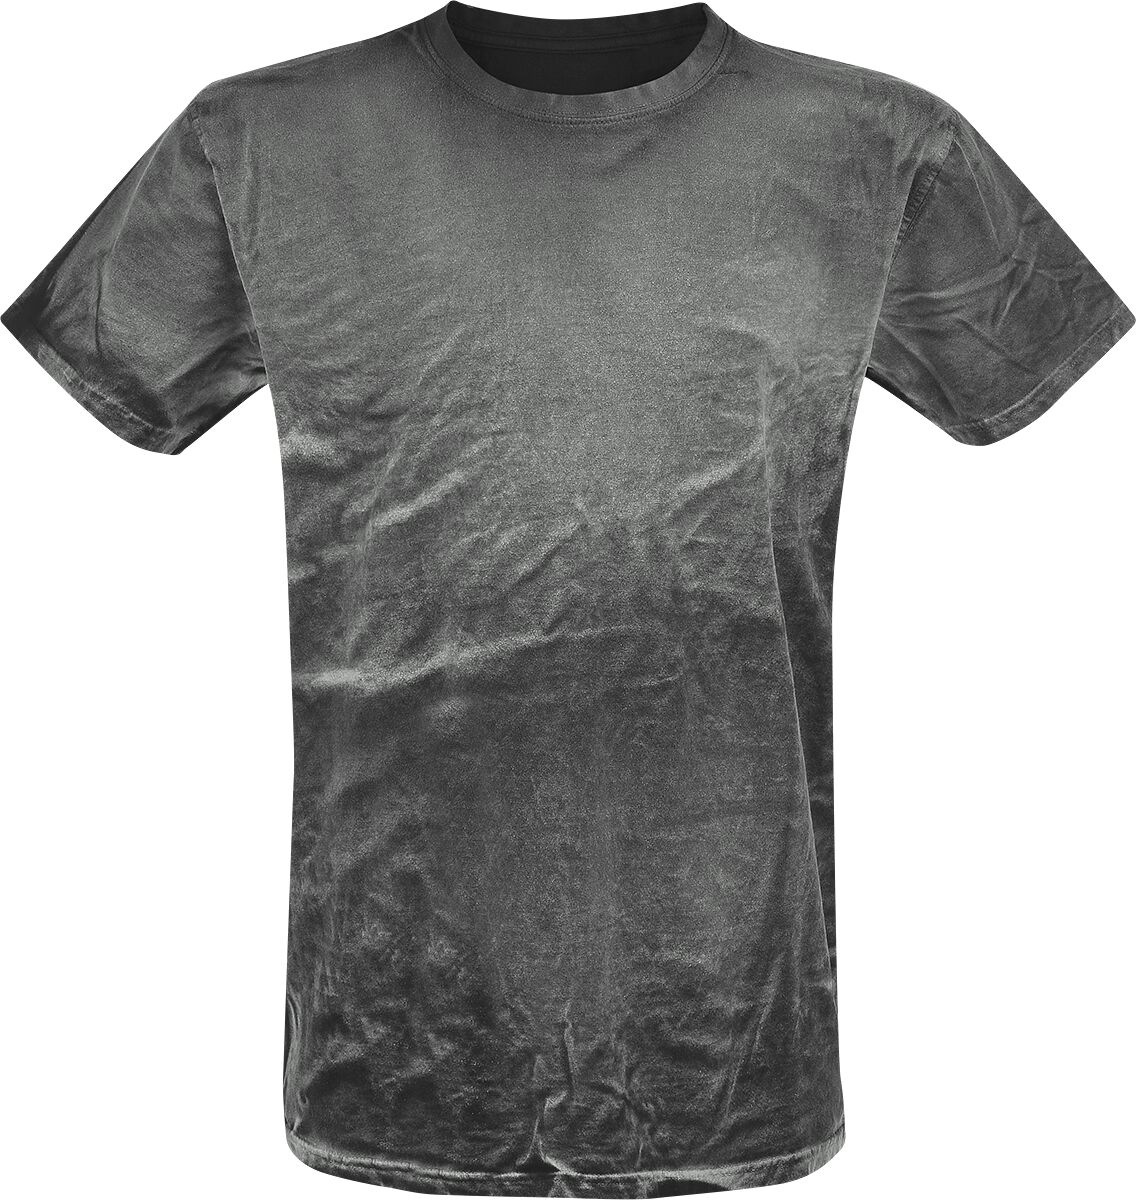 Image of   Outer Vision Spray Washed Black Shirt T-Shirt grå